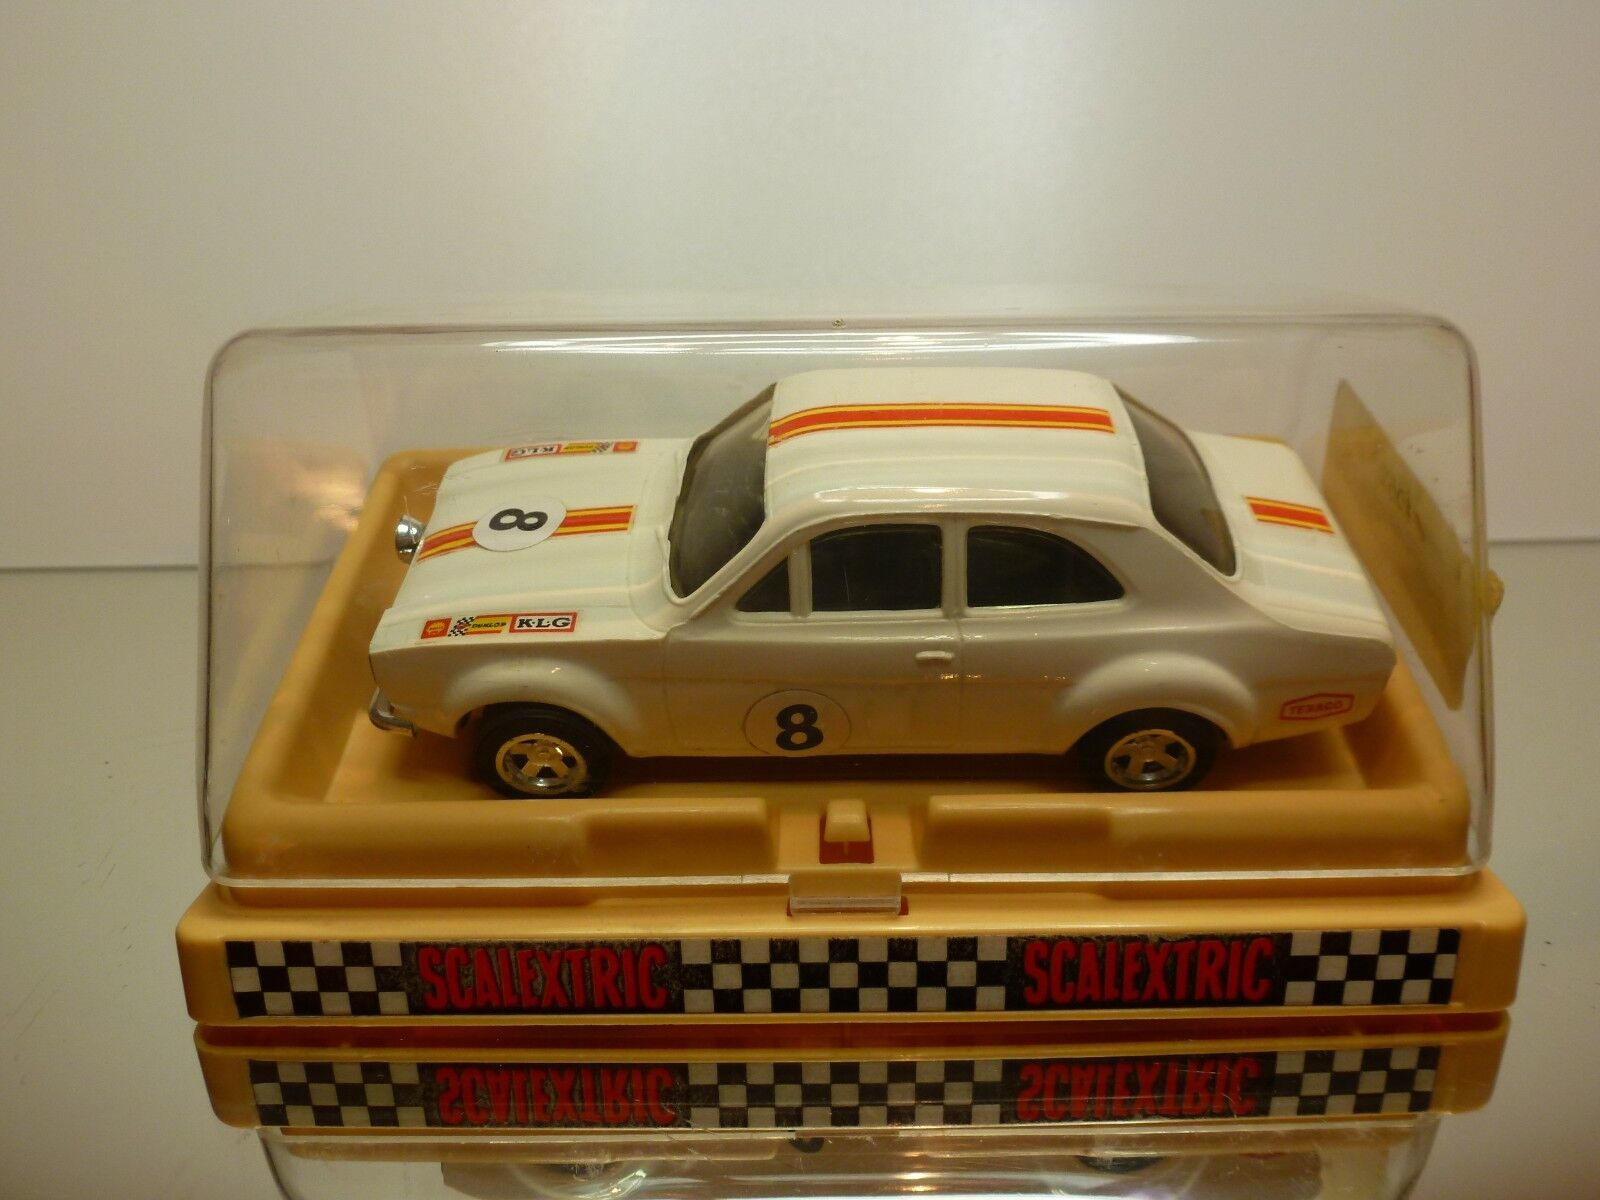 SCALEXTRIC SLOT CAR 09 0052 FORD ESCORT  8 - OFF bianca L13.0cm - GOOD IN BOX